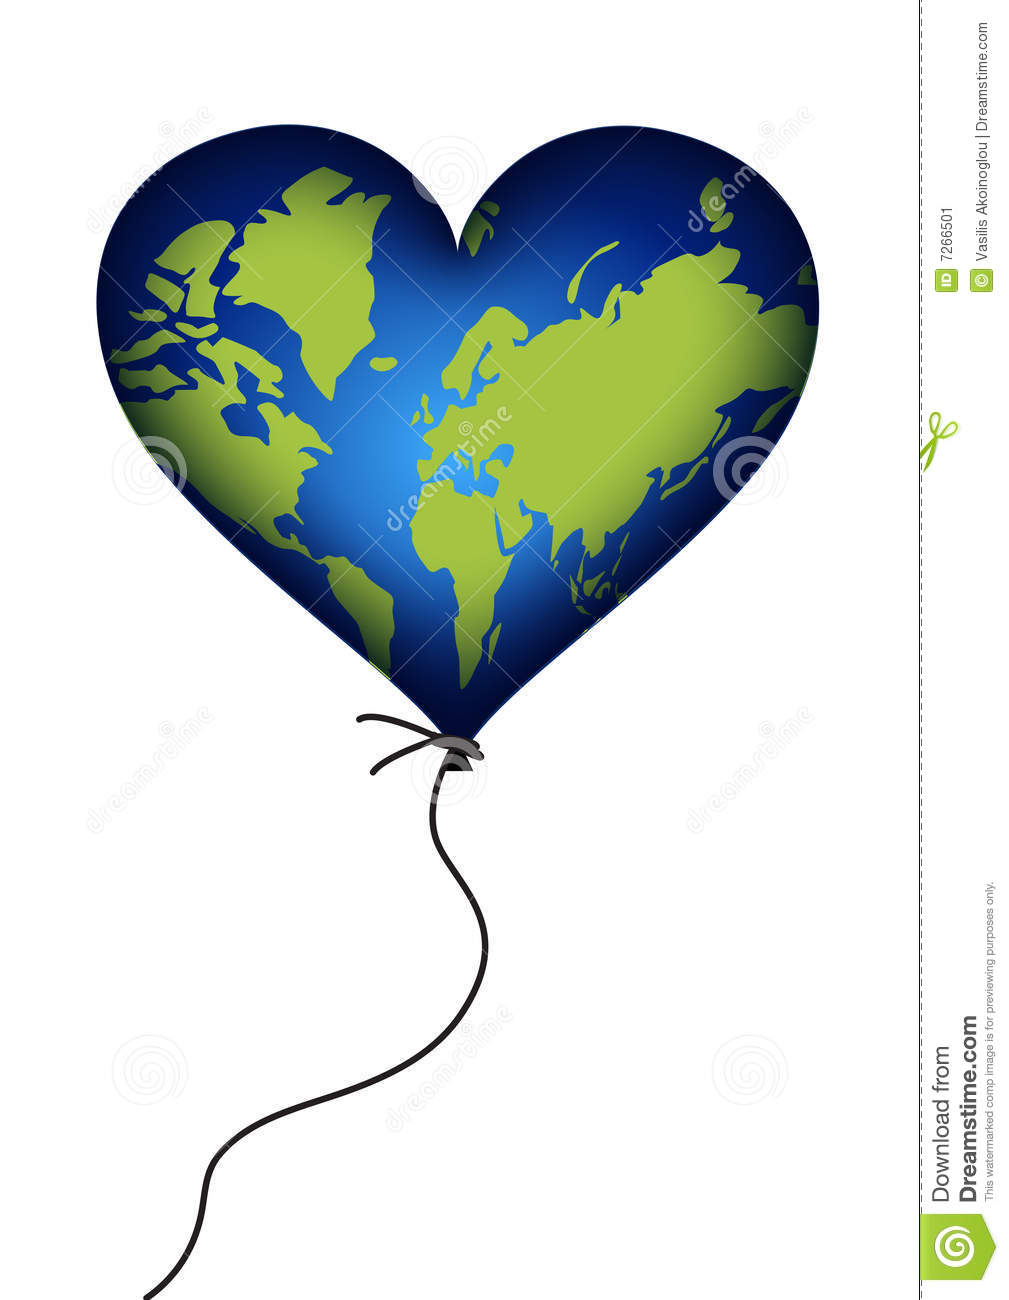 Earth Heart Clipart | Free download on ClipArtMag